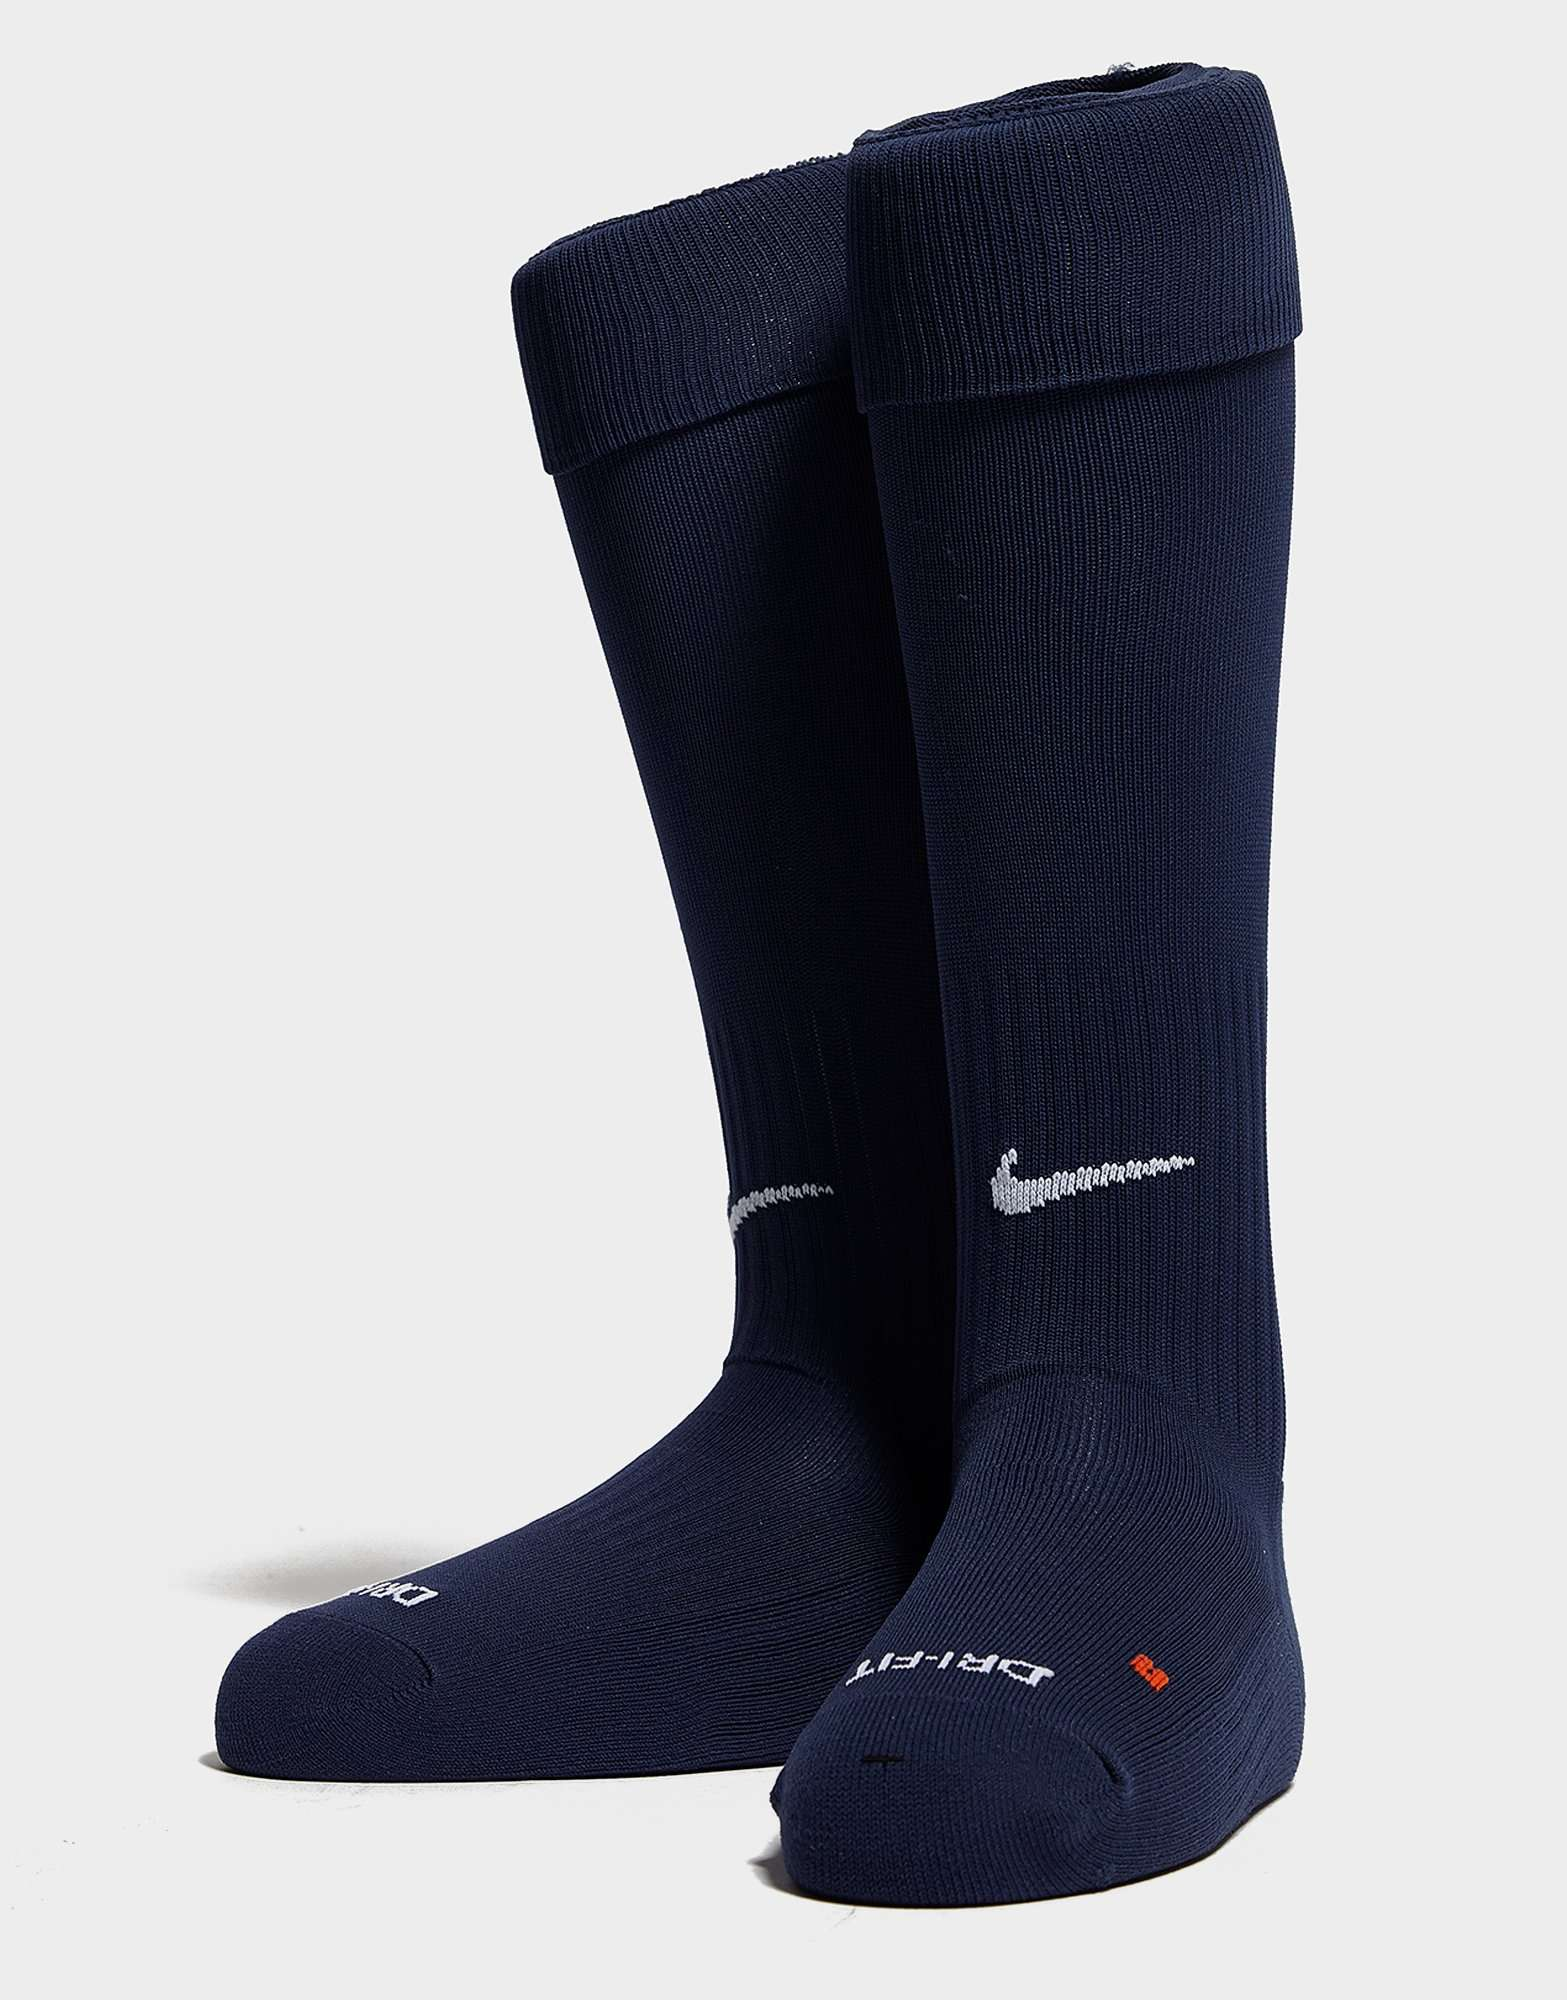 Nike Classic Football Socks | JD Sports - photo#38